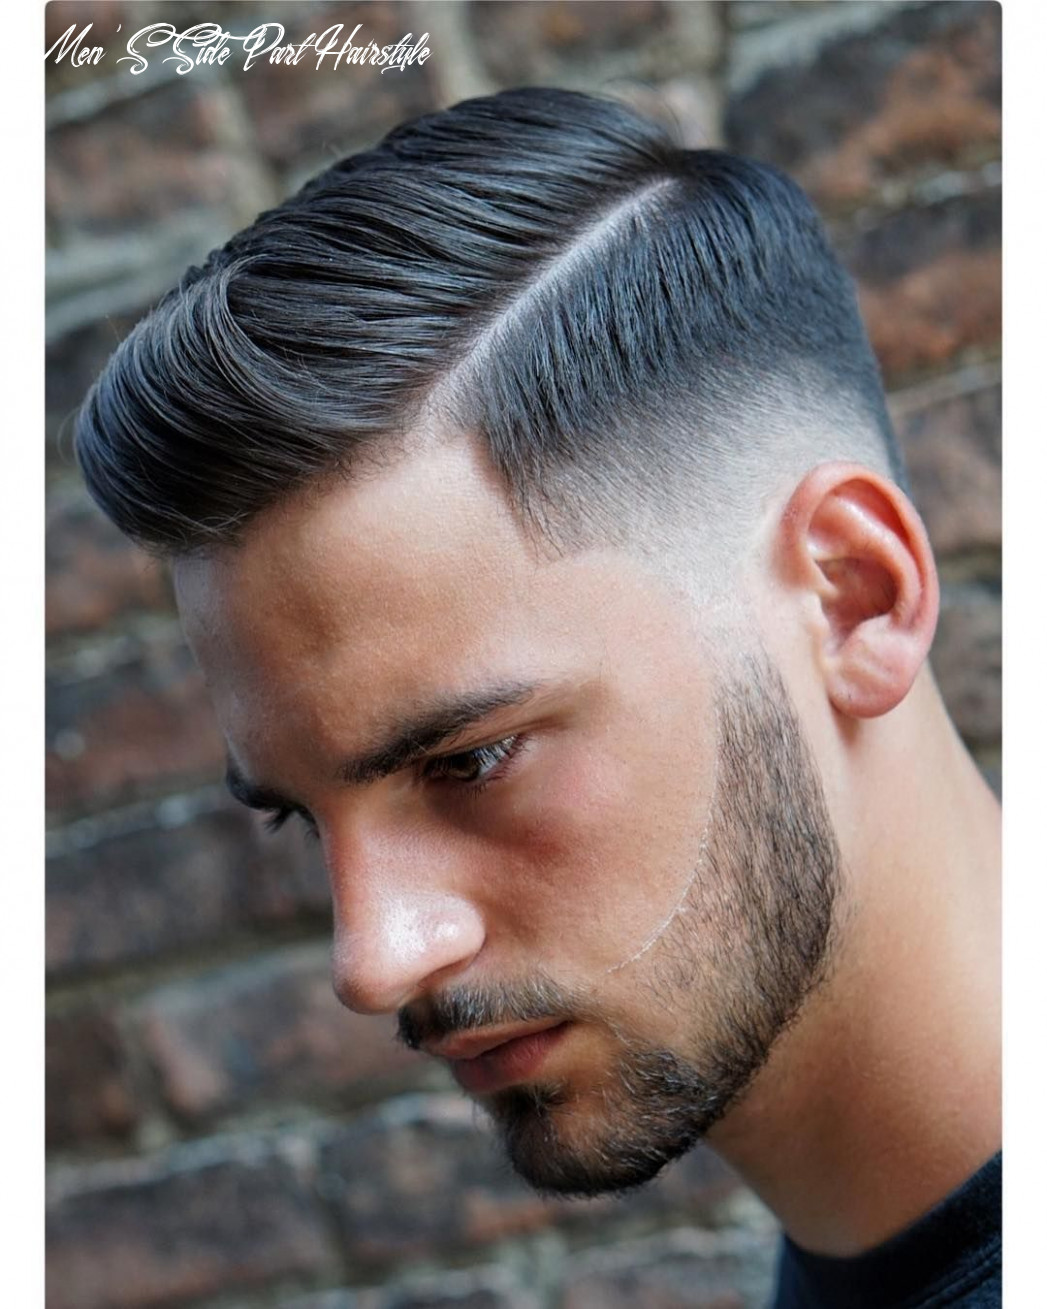 9 side part haircuts: 9 styles that are cool modern | coupe